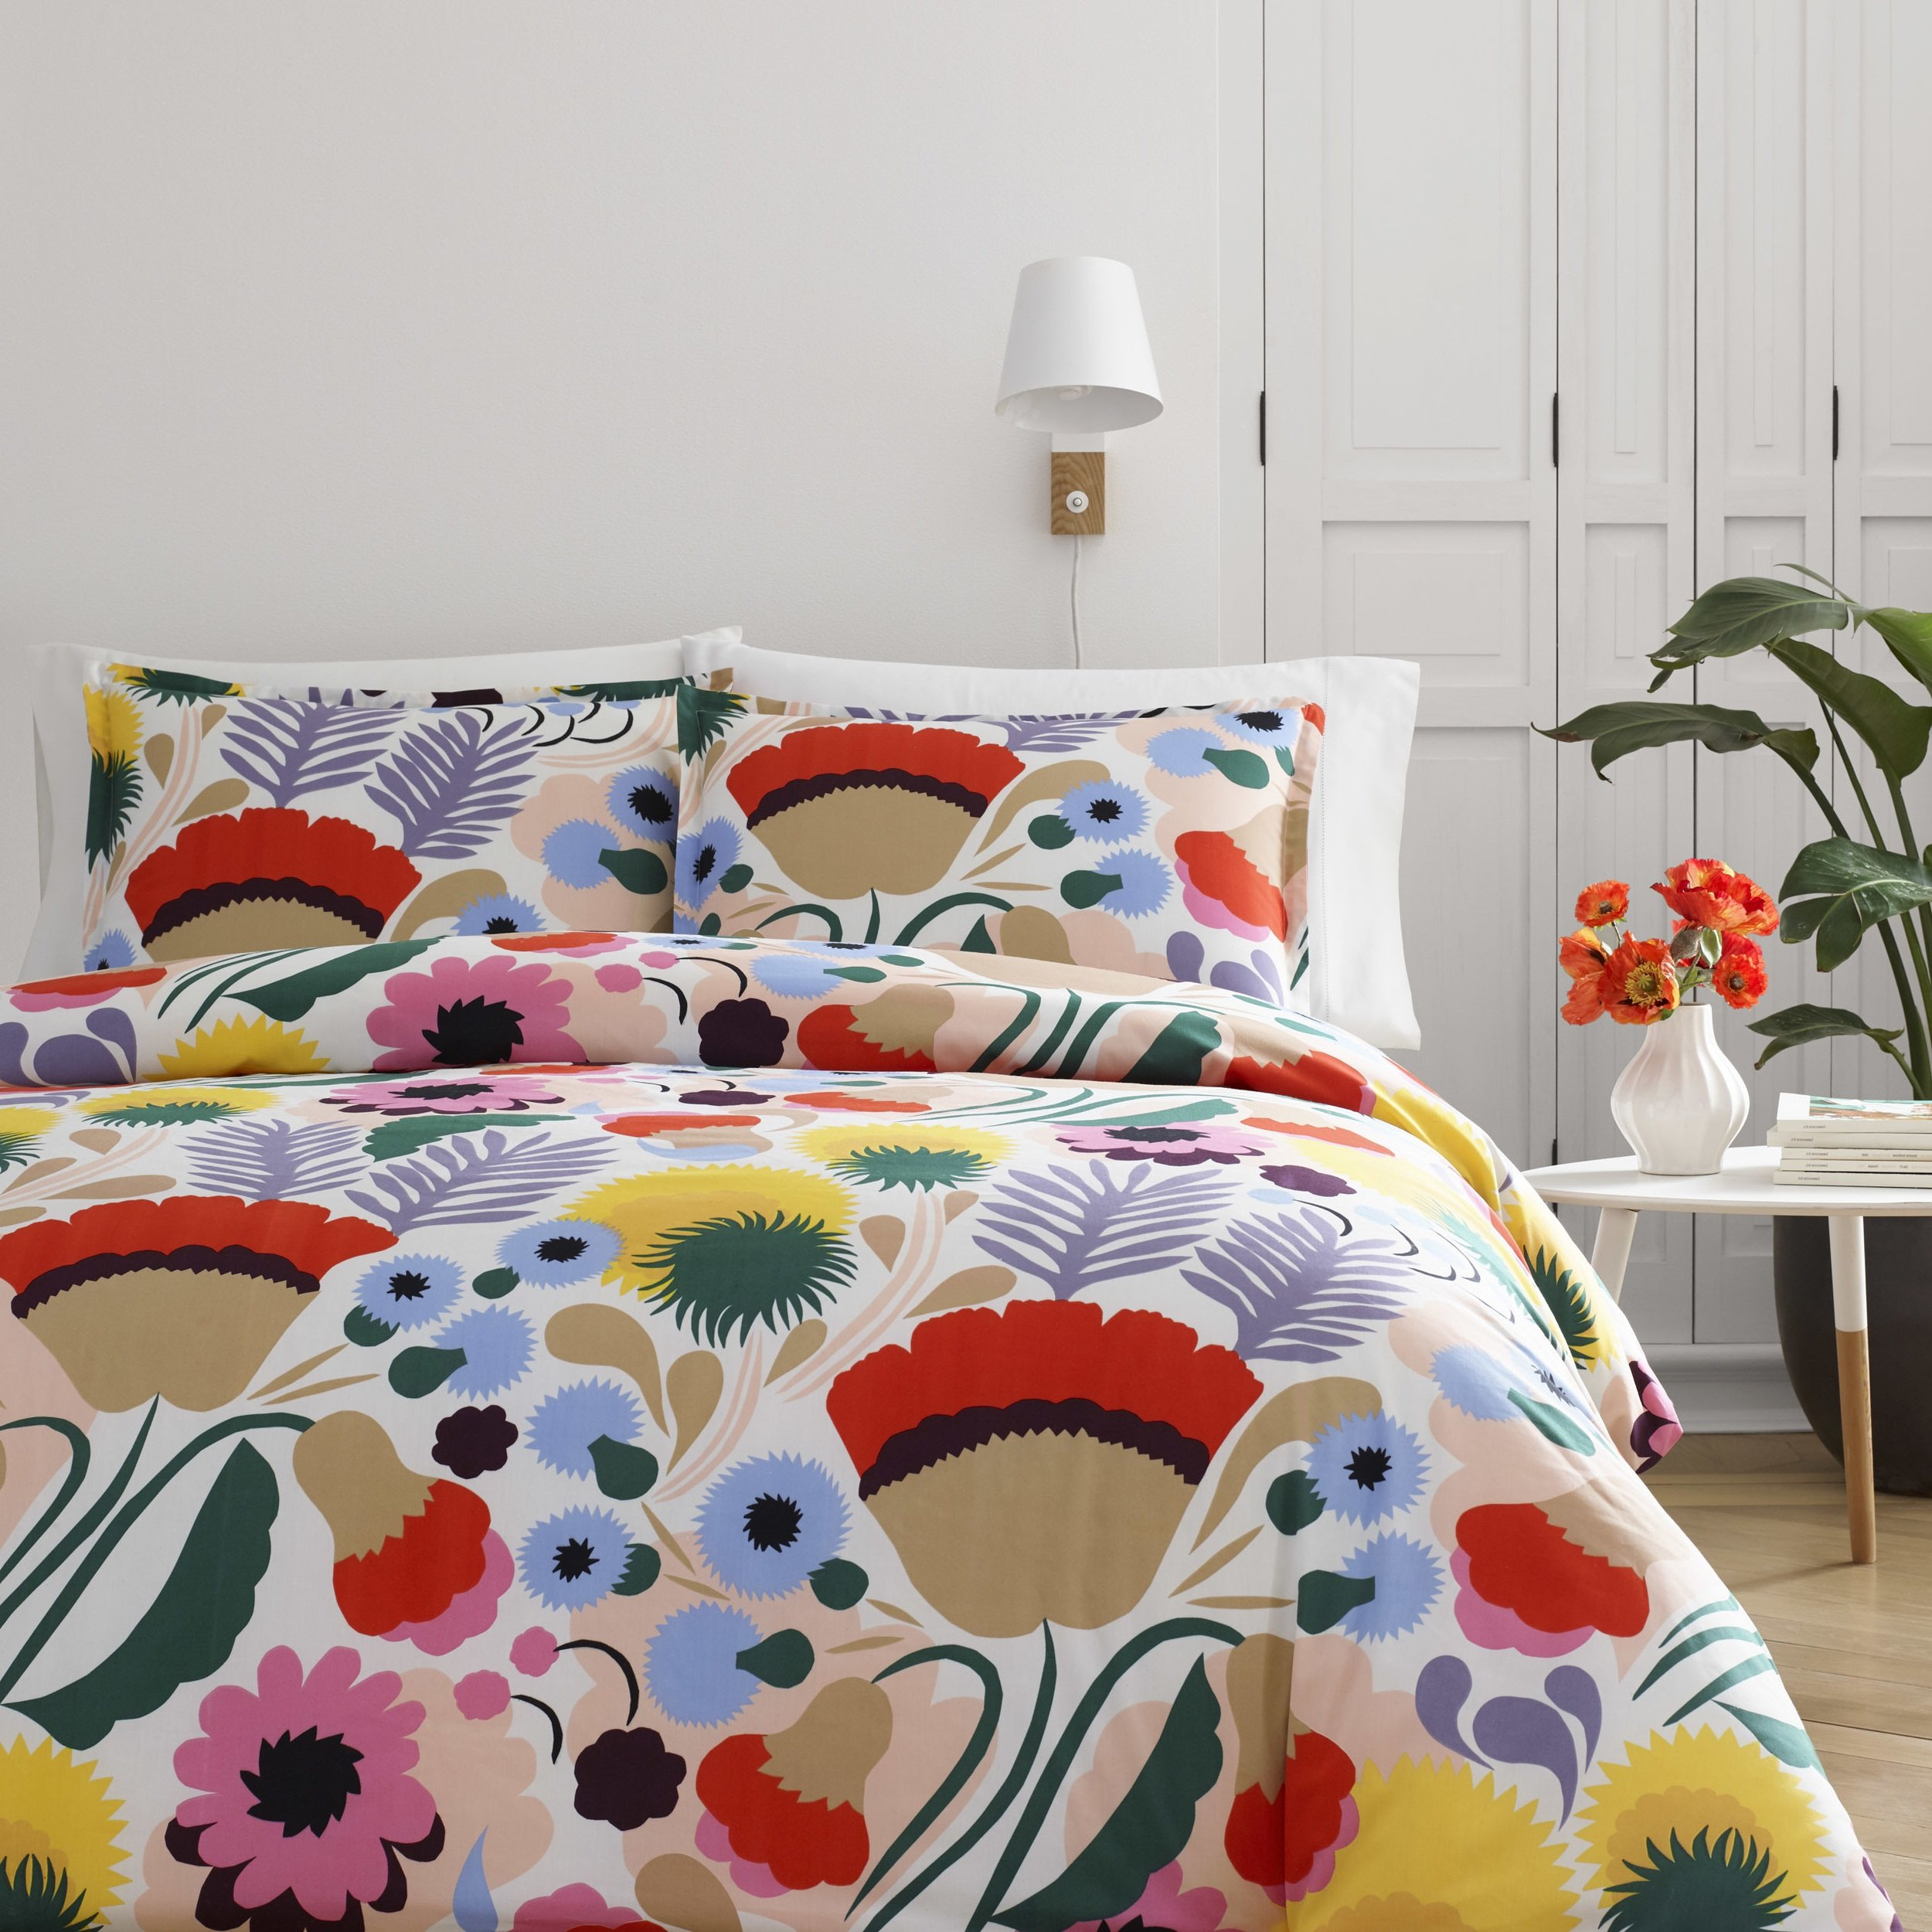 3 Piece Unique Floral Pattern Duvet Cover Set King, Contemporary Allover Modern Flower Graphic Style Design, Mid-Century Bouquet Look Themed, Vibrant Reversible Bedding, Adorable Multi Color Unisex